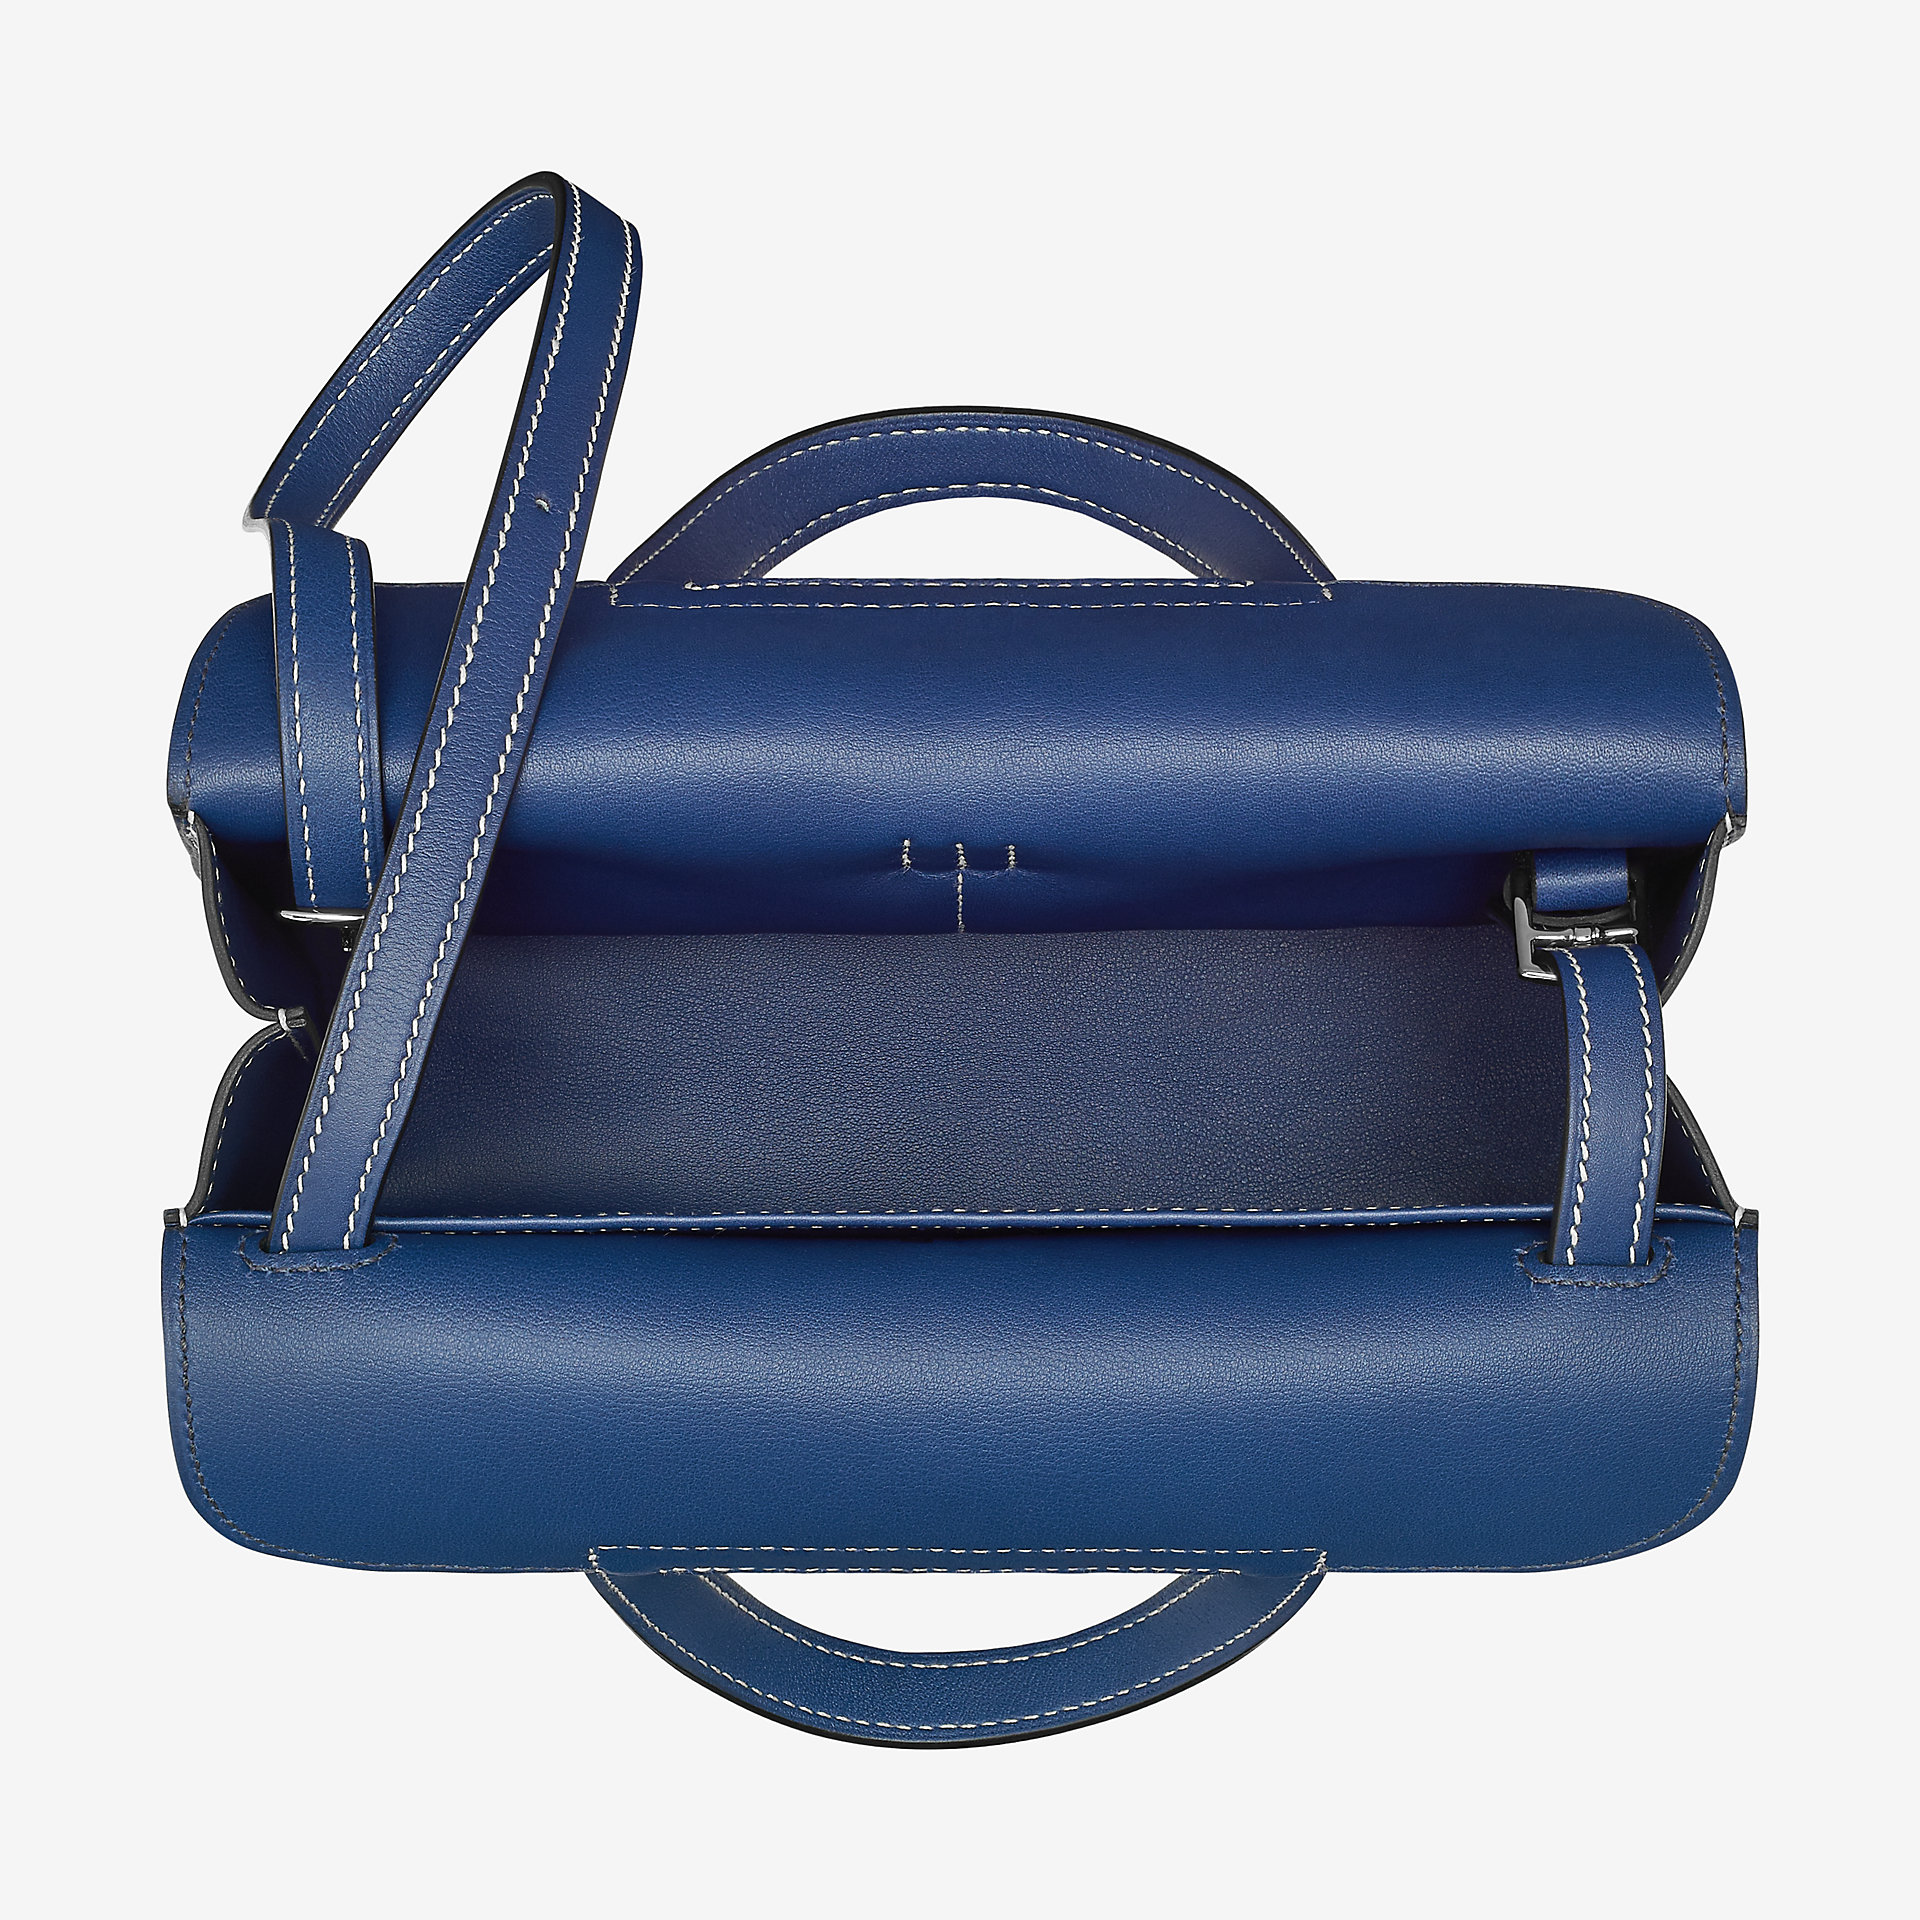 爱马仕Hermes Halzan mini bag迷你手提bleu saphir Swift calfskin 小牛皮